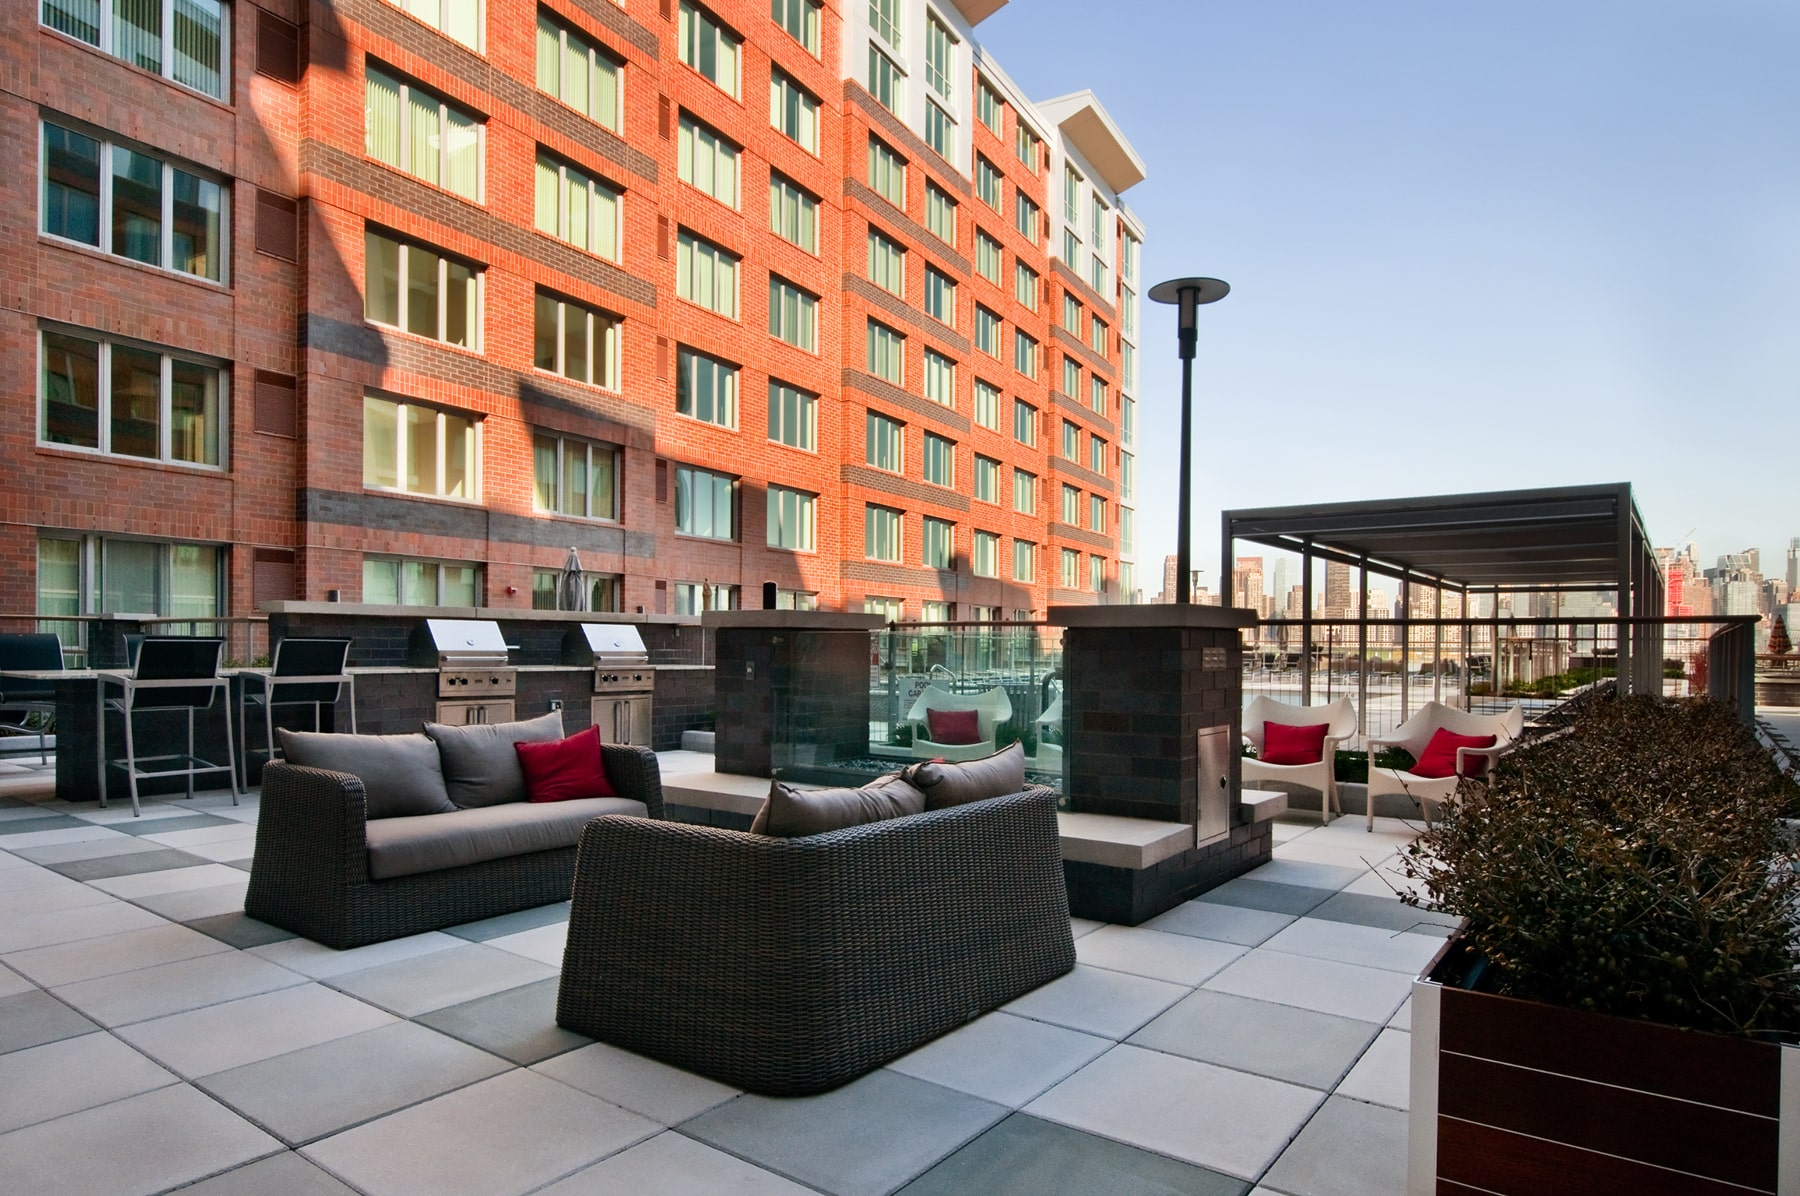 Roseland Announces Opening of 360-Unit The Capstone at Port Imperial Luxury Apartment Building on The New Jersey Gold Coast